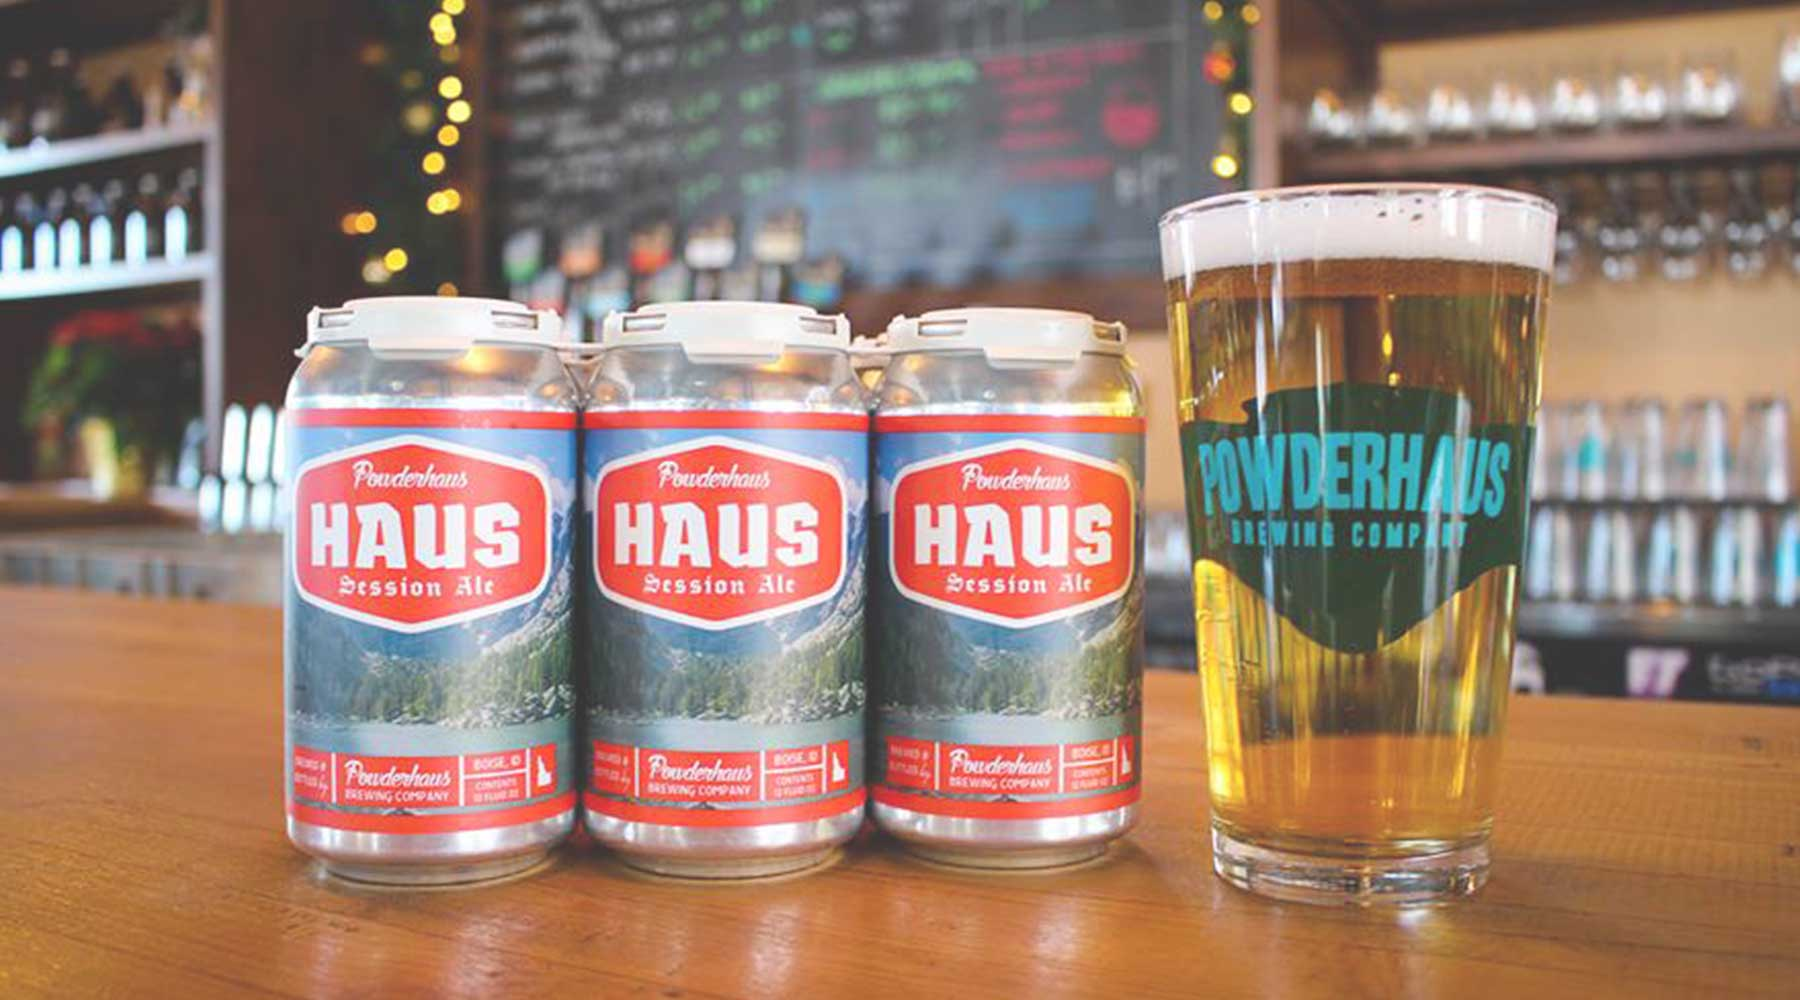 Powderhaus Brewing Company | Just Wine